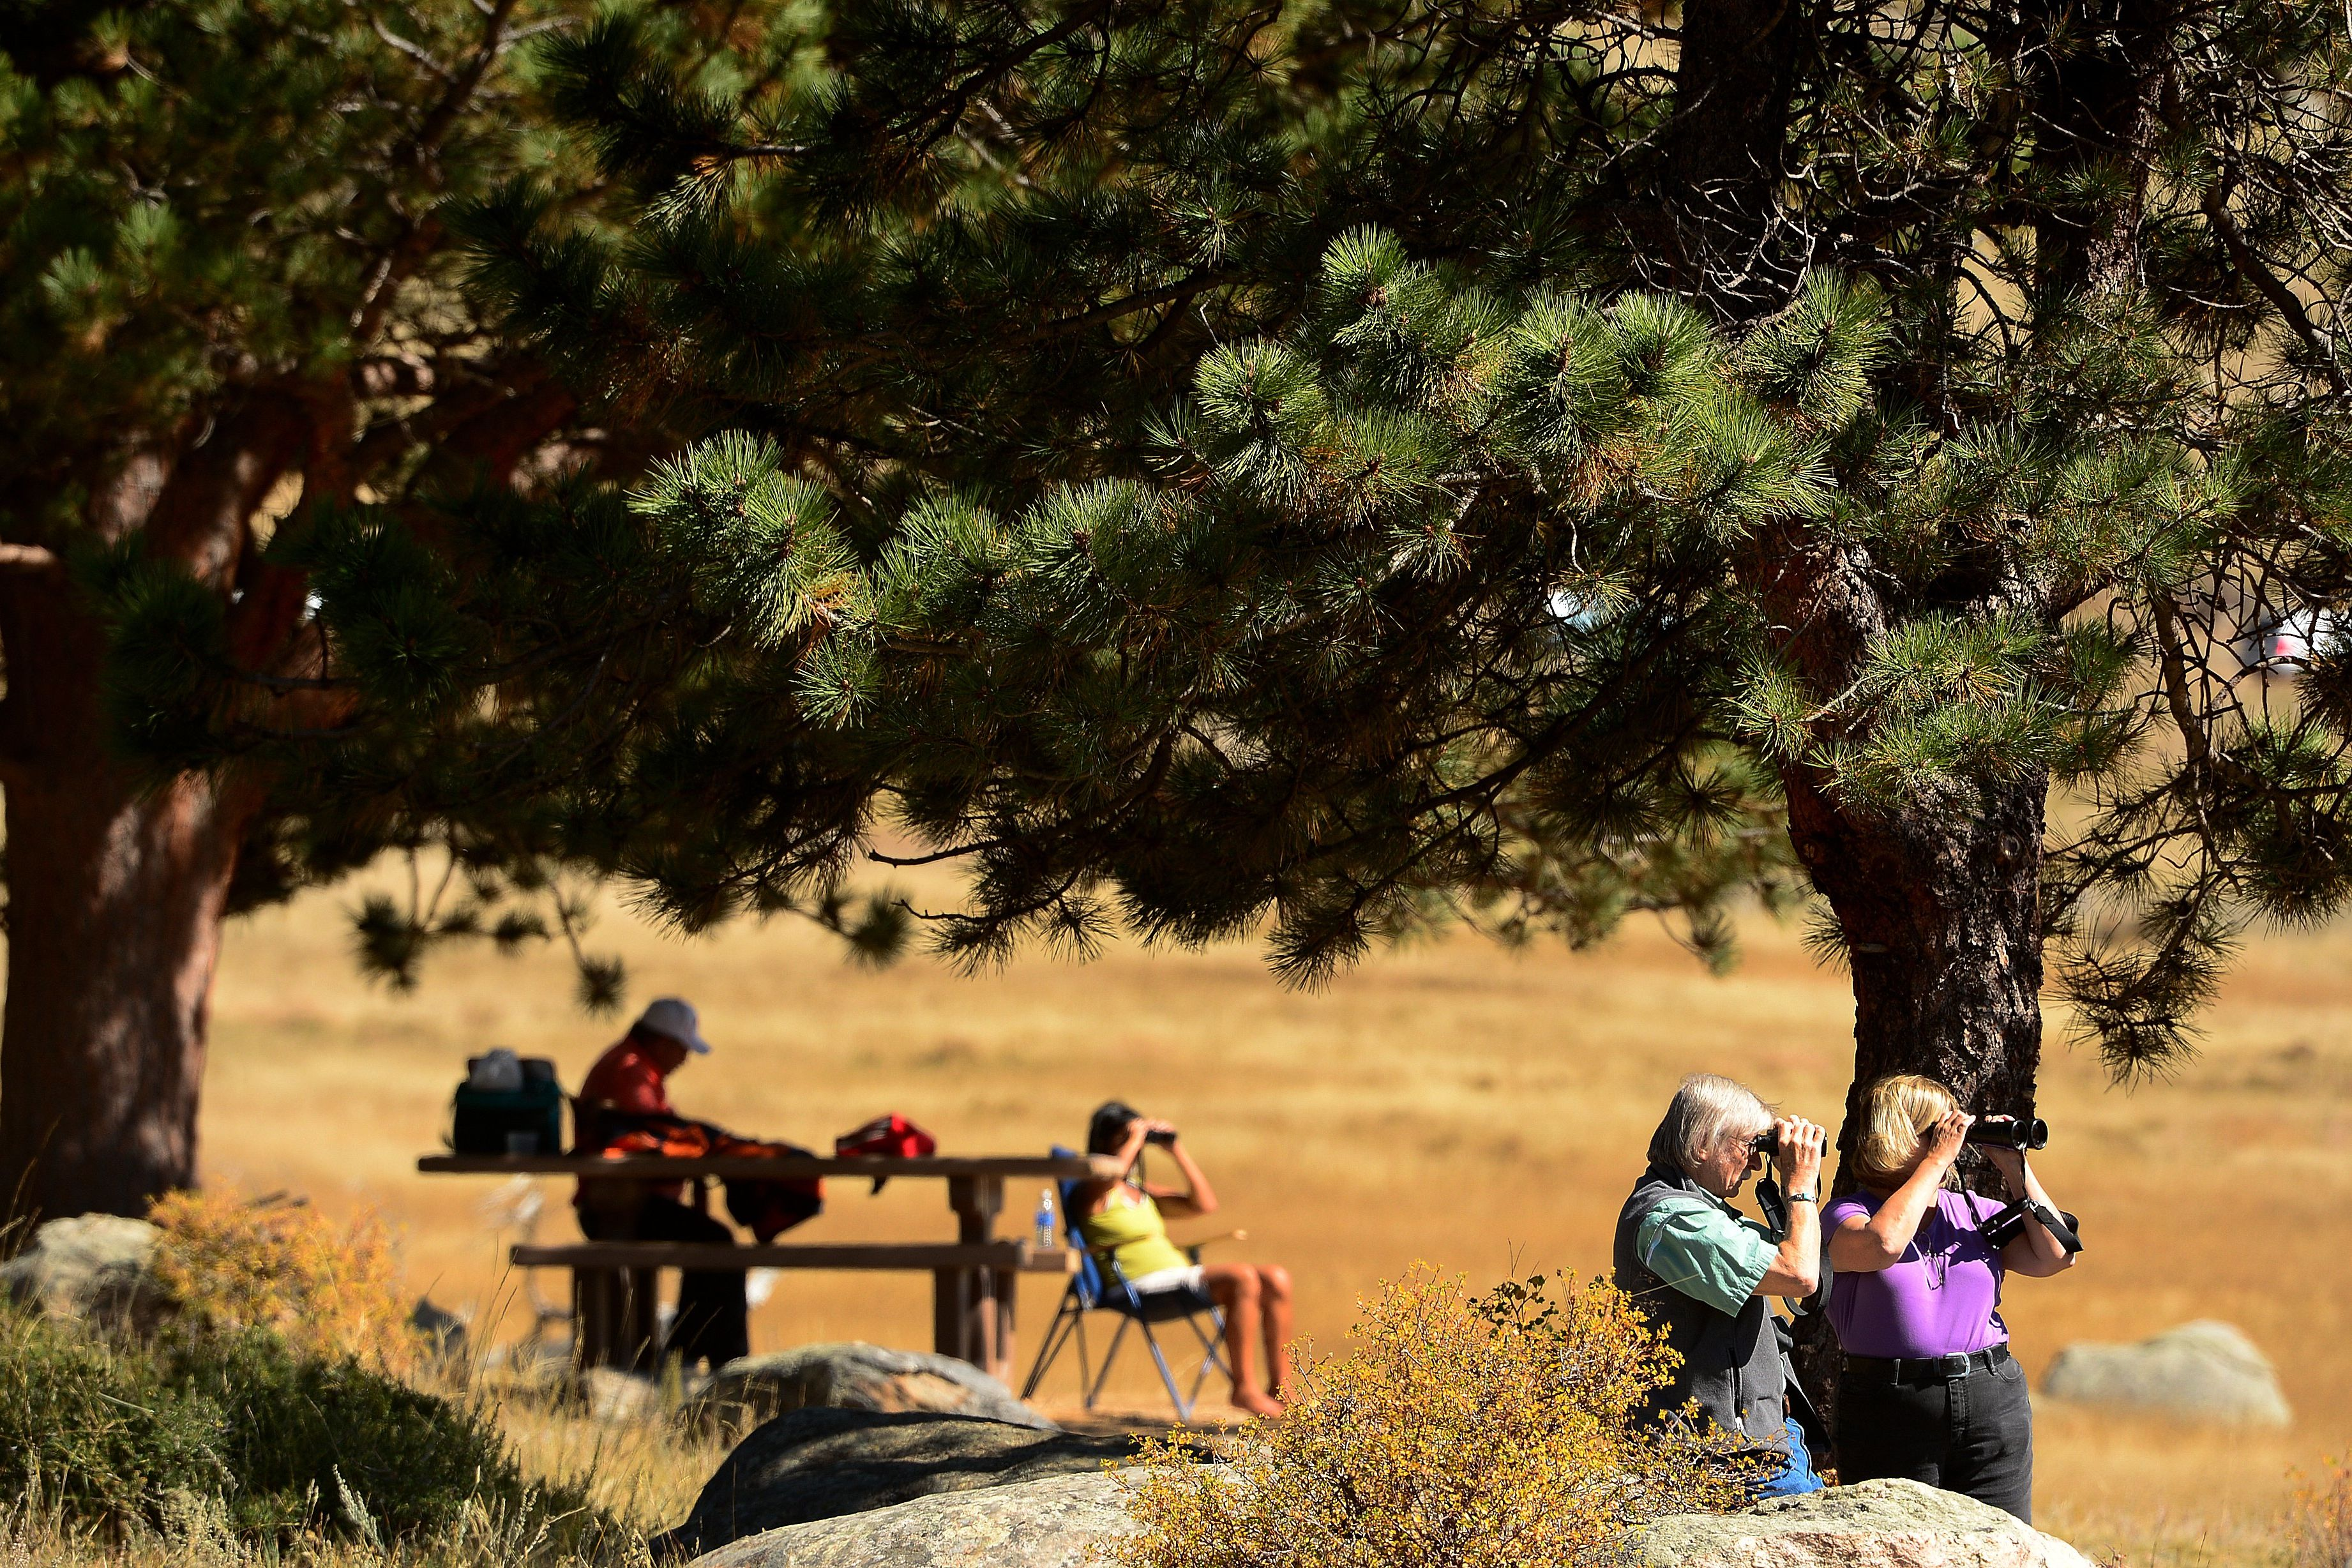 Seniors Can Get Lifetime Access to National Parks For Just $10. But Not For Long